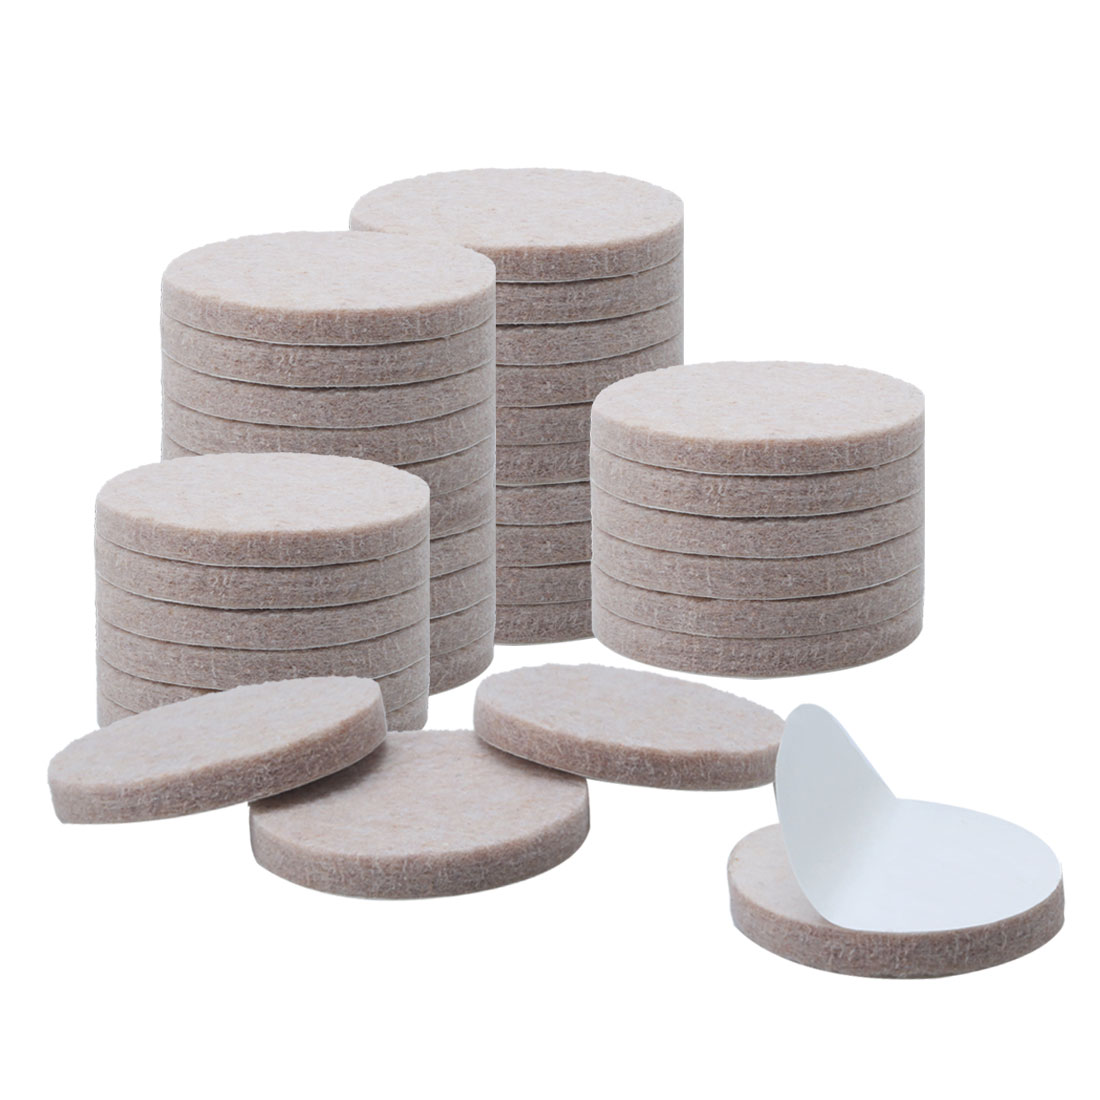 "Furniture Pads Round 1 1/2"" Self-stick Anti-scratch Table Floor Protector 36pcs - image 7 de 7"